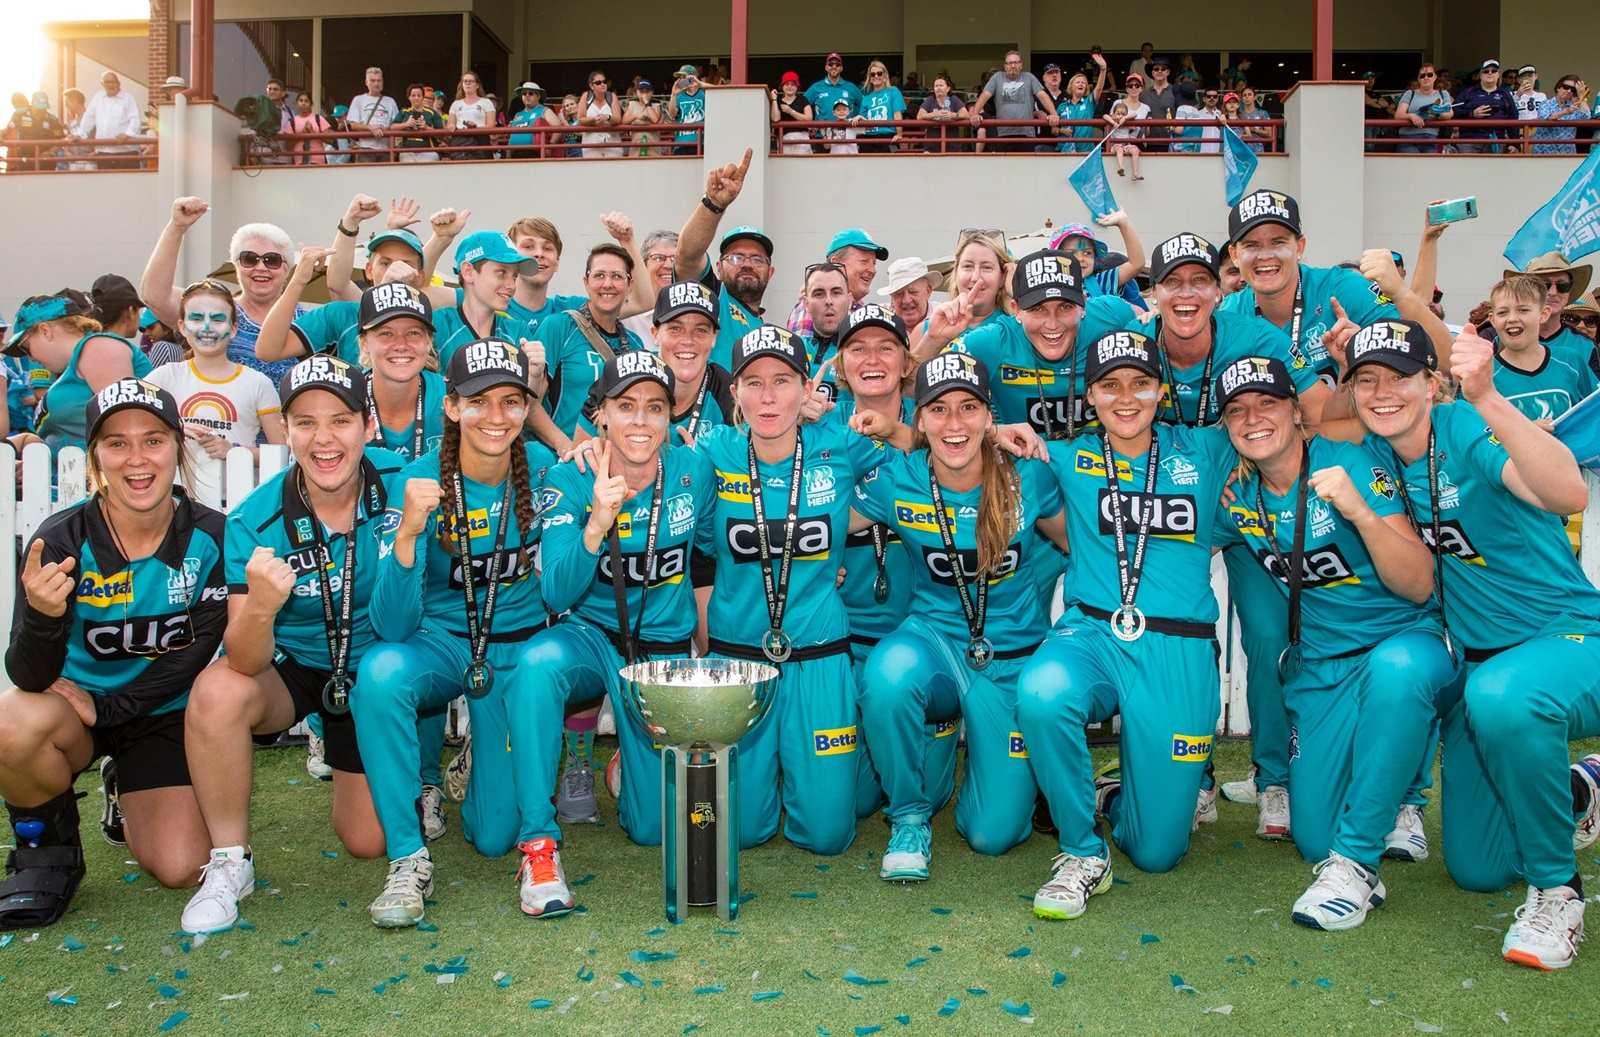 Wbbl To Claim More Tv Spotlight In New Schedule Cricket Com Au